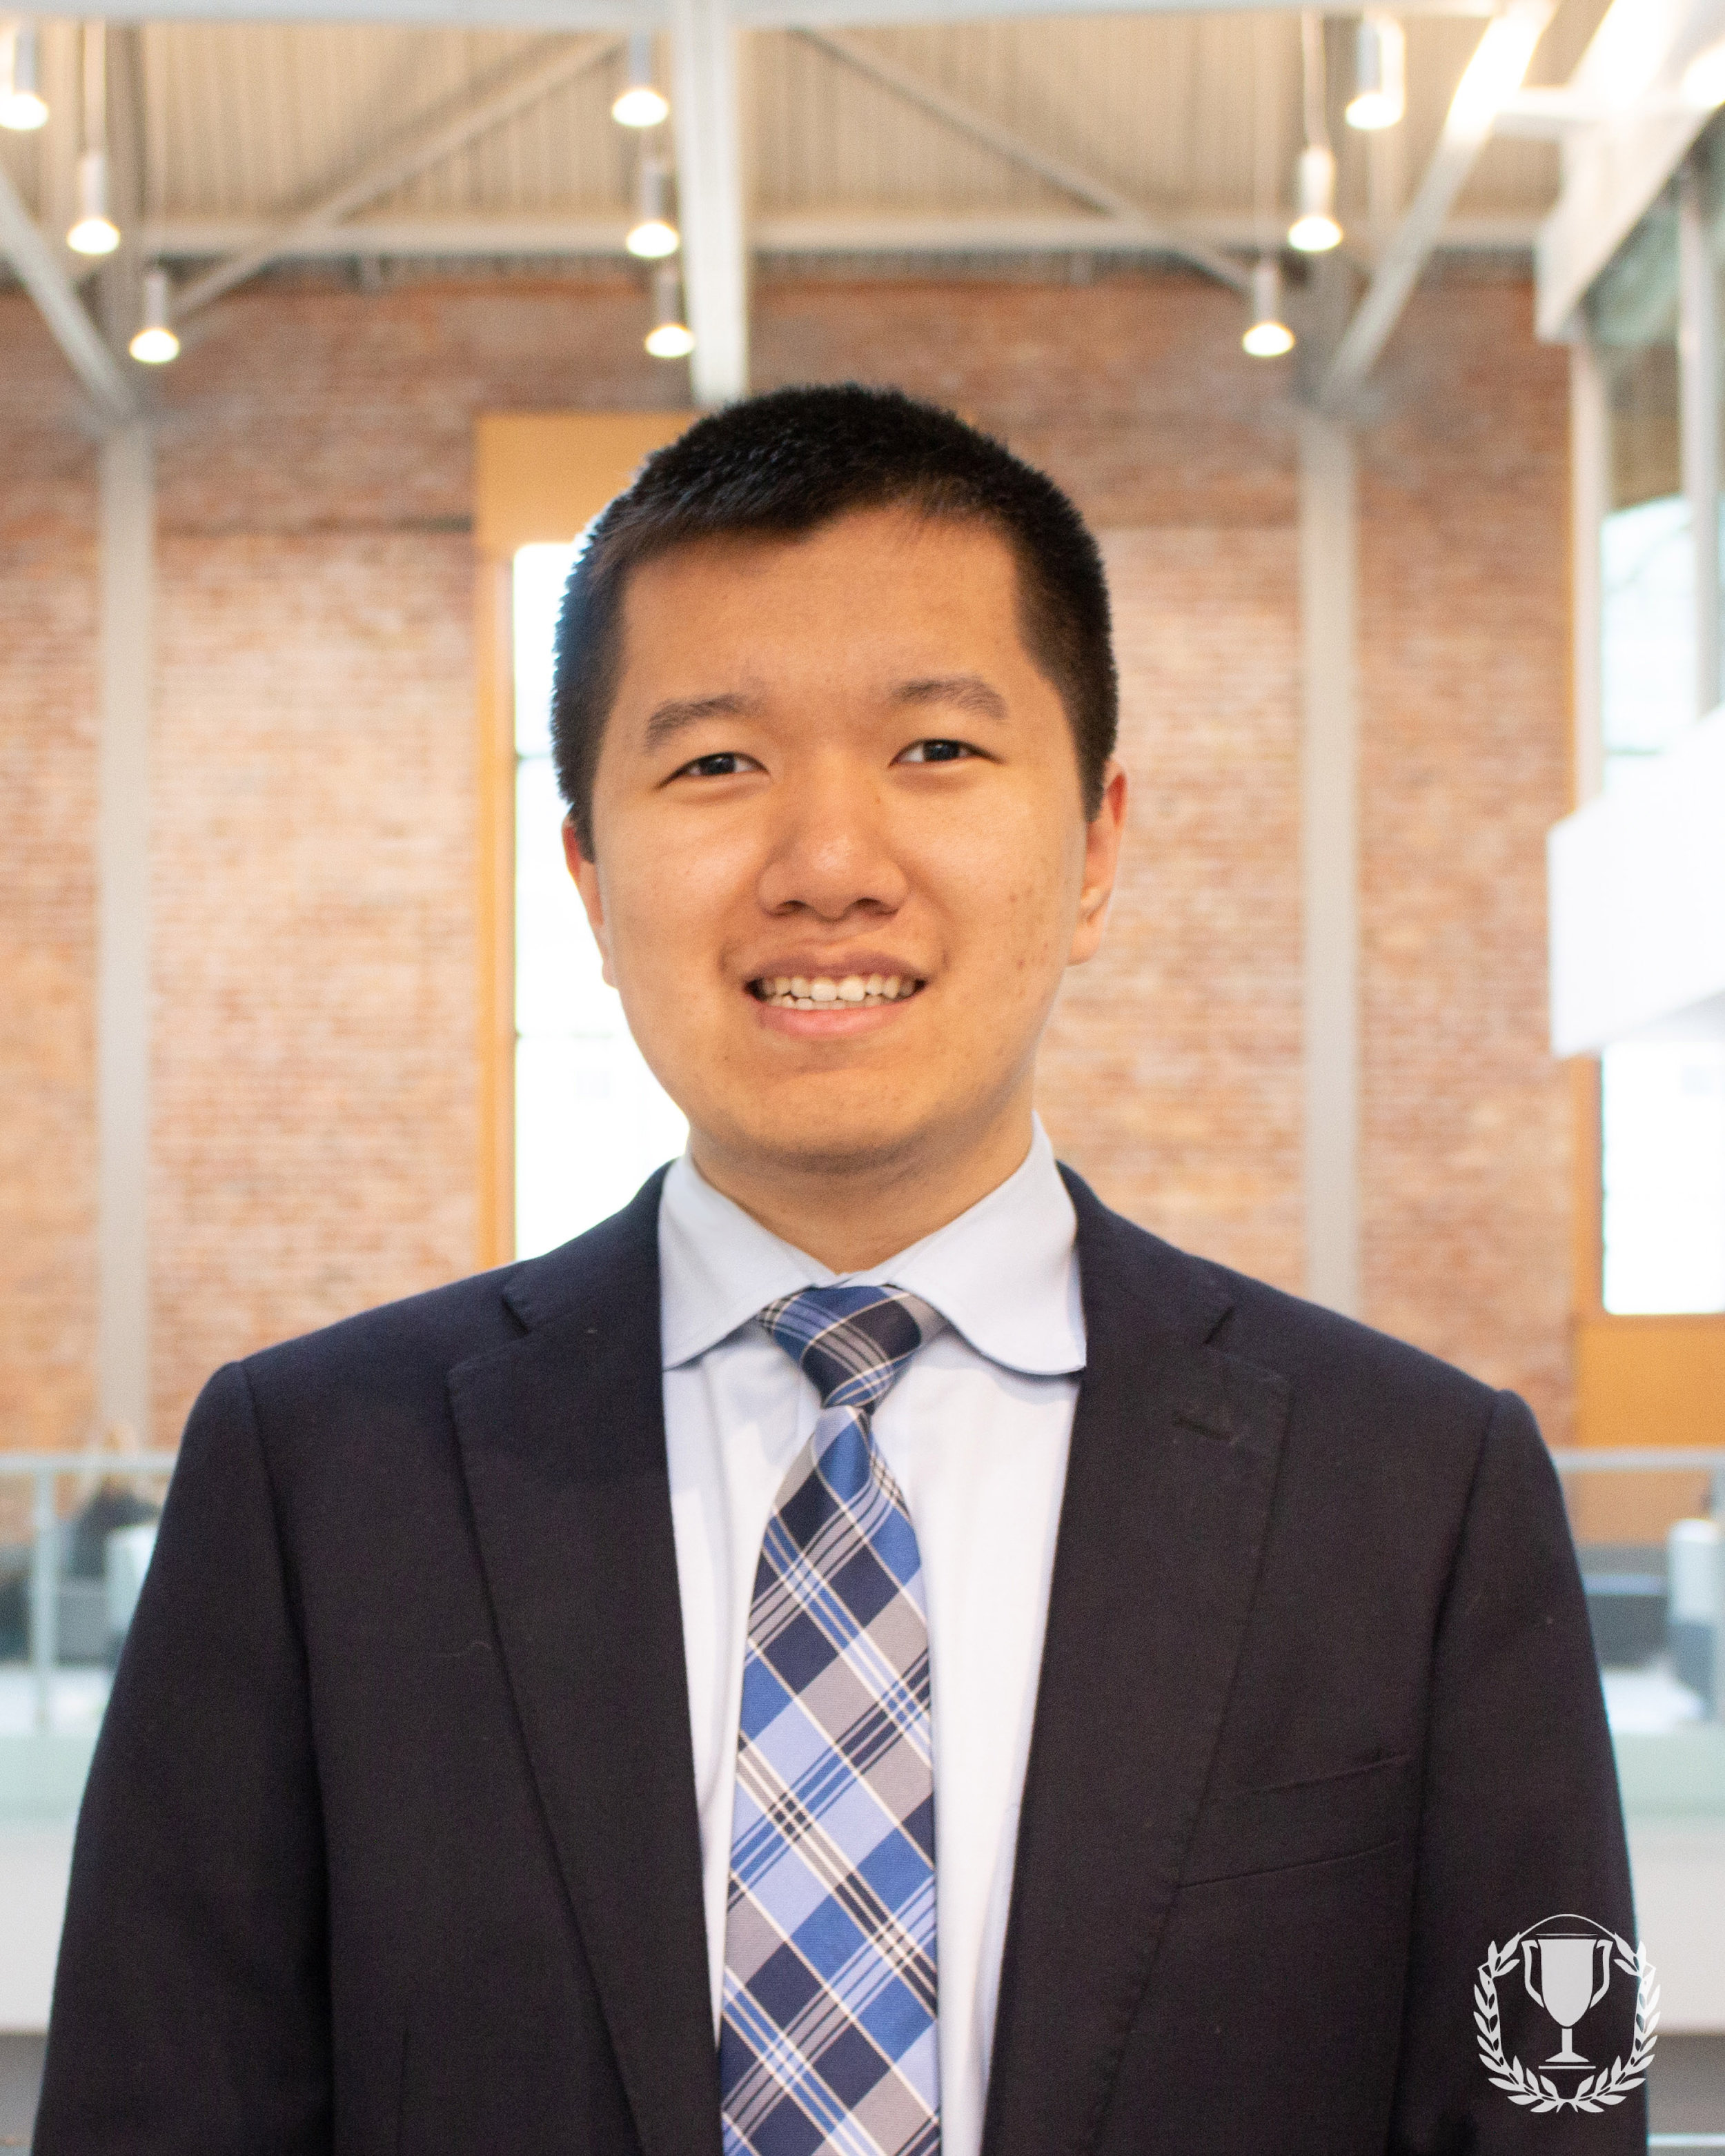 Kevin Lei - Digital & IT Officer   Kevin is delighted to be part of the team for I.C.B.C.'s 42nd year! As the Digital and IT Officer, he is thrilled to be working with the rest of the team in ensuring this year's events are more innovative and engaging than ever before for all stakeholders, including delivering value through a revamped I.C.B.C. mobile app and website. Outside of I.C.B.C., you can find Kevin at the bubble tea cafe, the movie theatre, or on the grind in a breakout room.